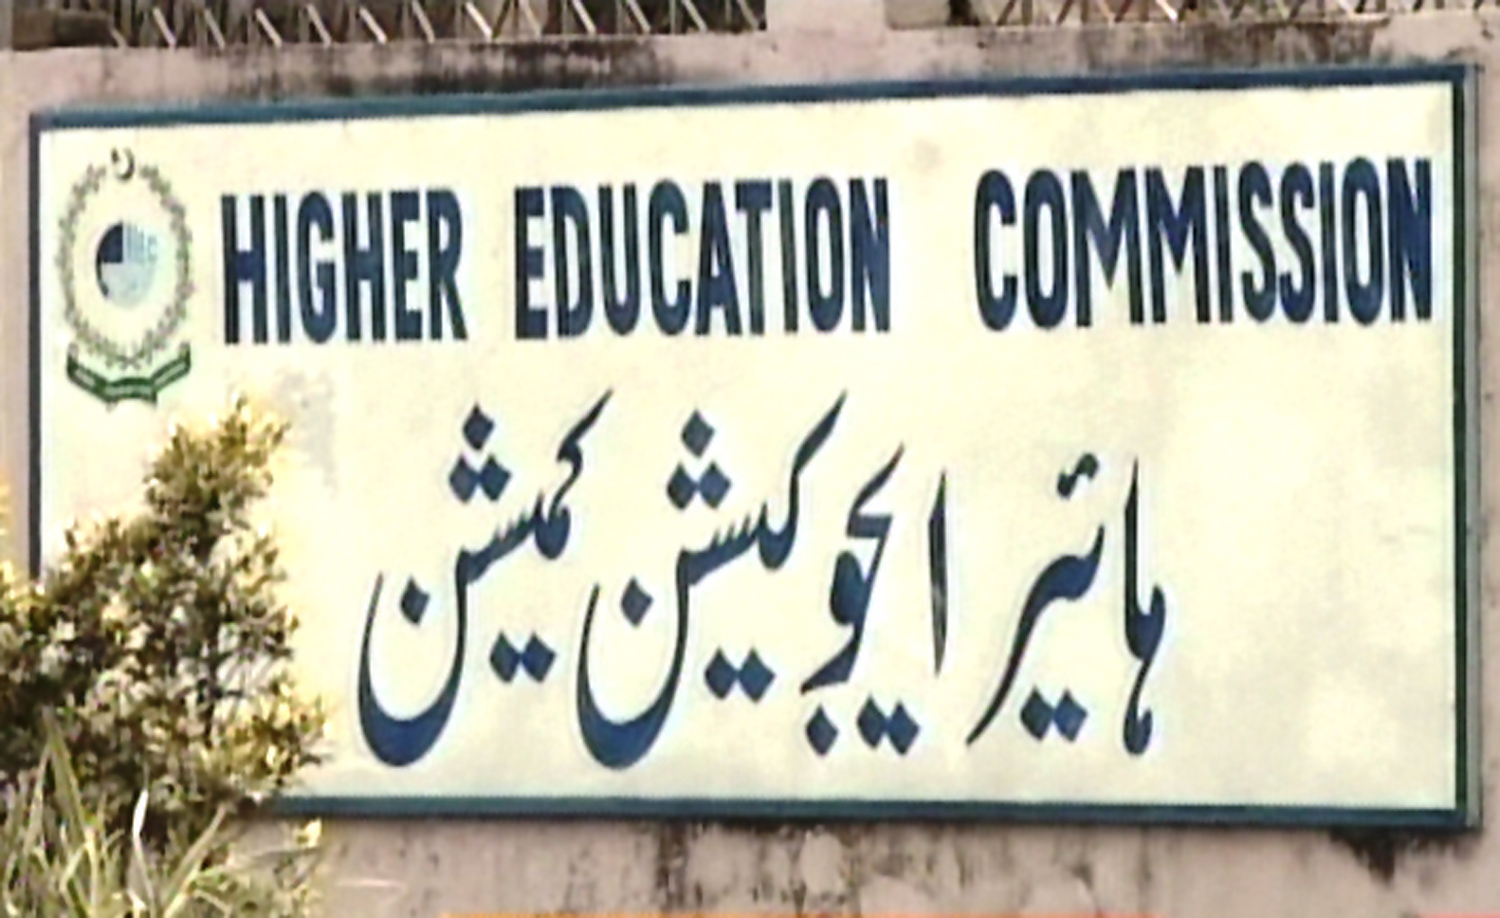 The commission also released Rs 10 million to the Lasbela University of Agriculture, Water and Marine Sciences and Rs4 million to Balochistan University of Engineering and Technology, Khuzdar in the previous month. PHOTO: FILE